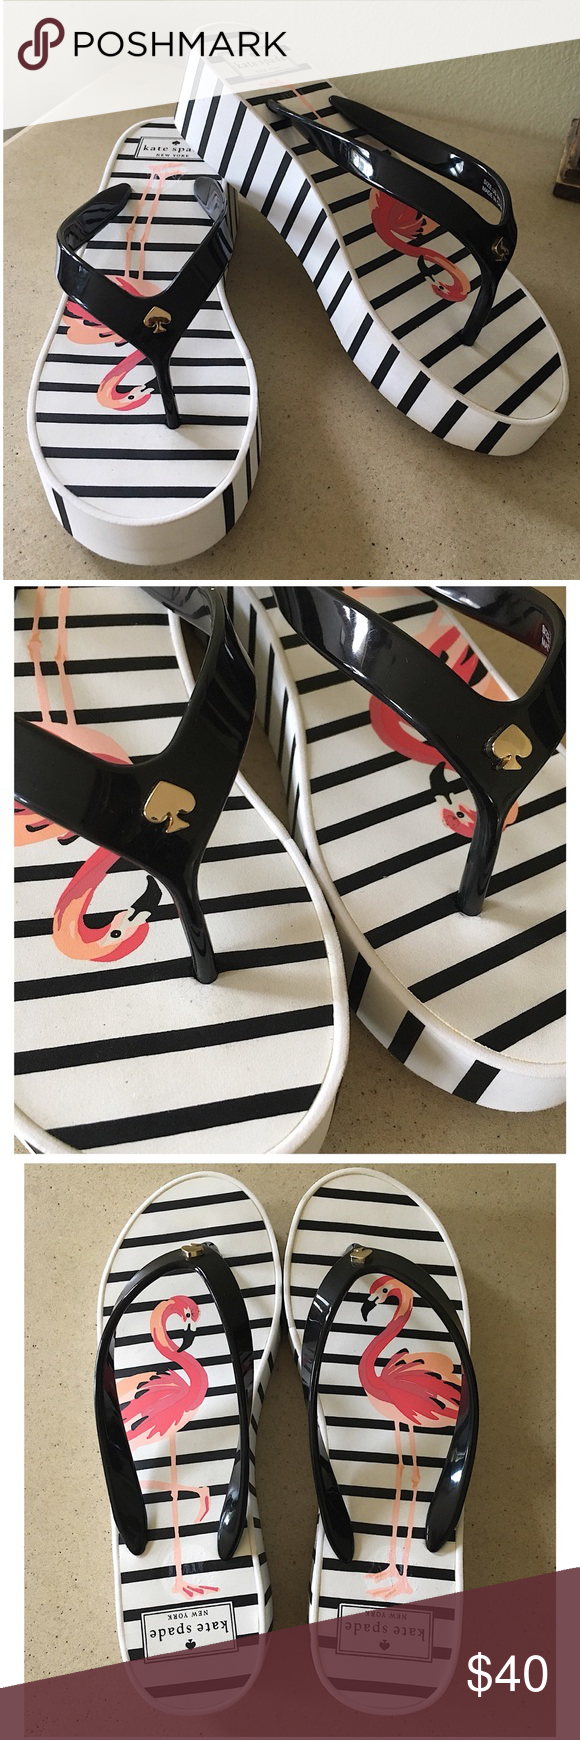 cd87c10ffc22 KATE SPADE NEW YORK REMMIE WEDGE FLIP FLOPS NWOT- Kate Spade New York  Remmie Platform